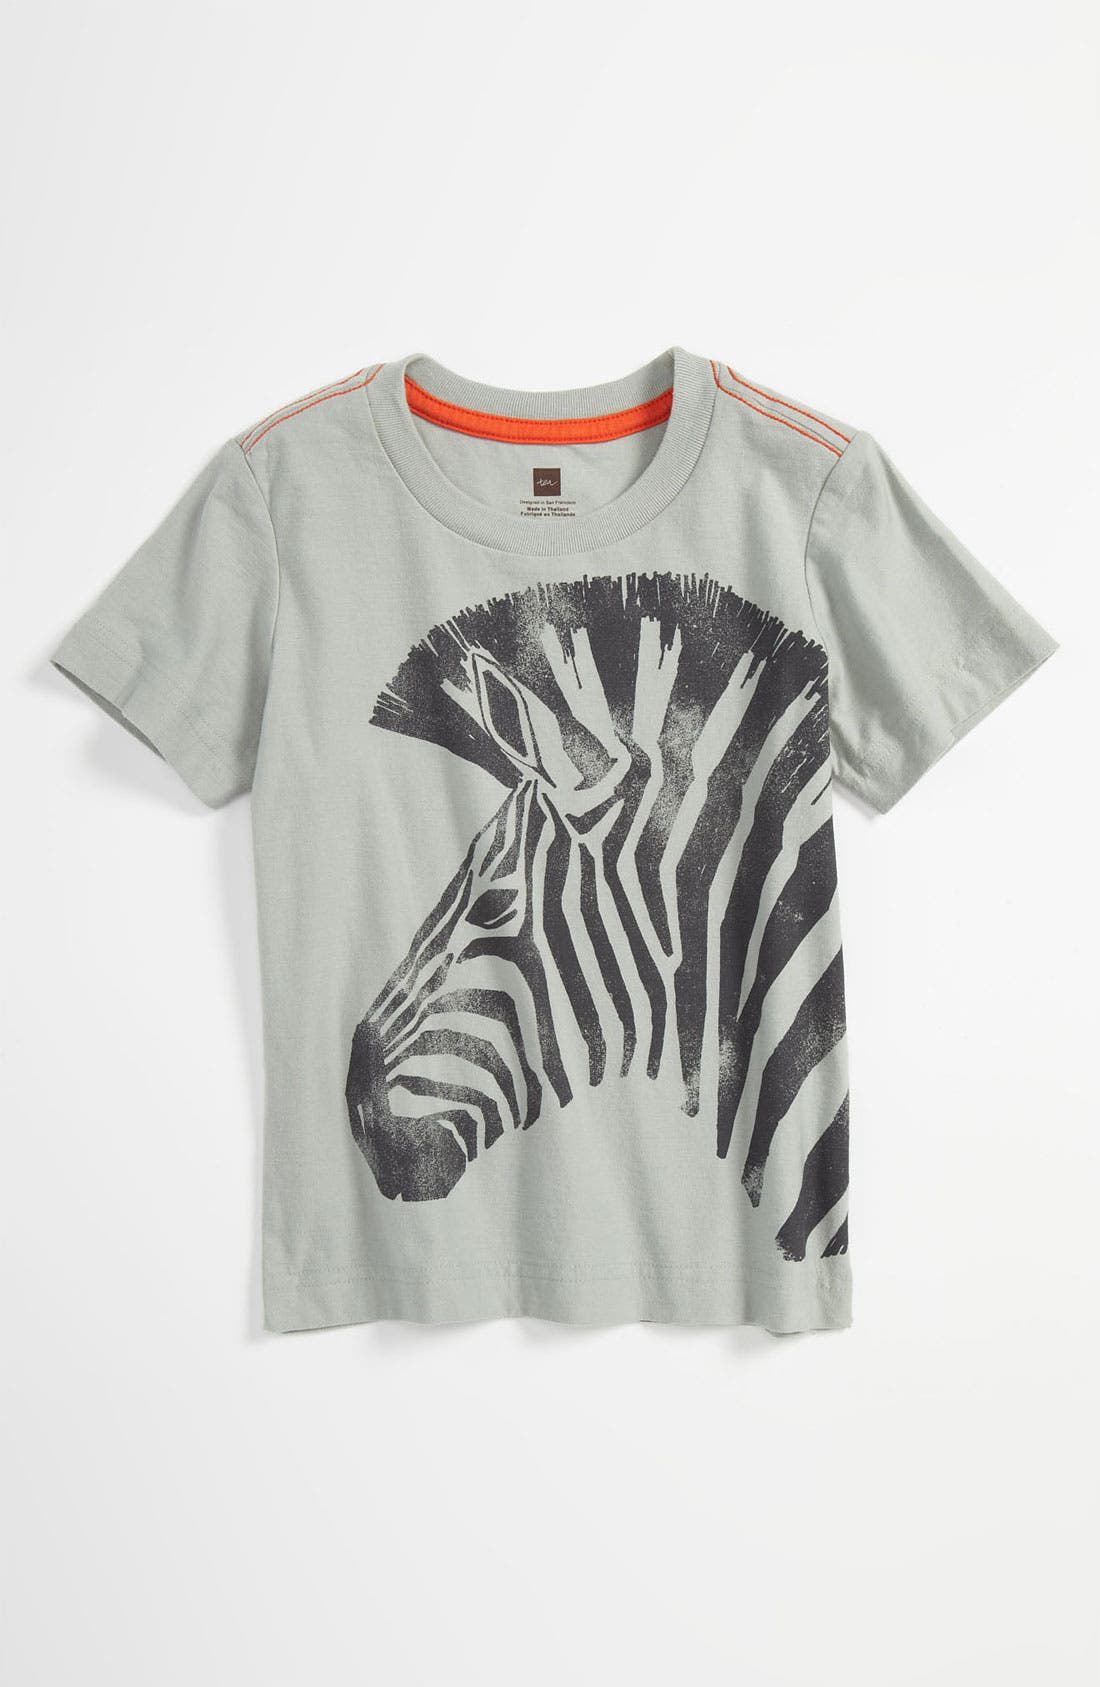 Alternate Image 1 Selected - Tea Collection 'Zebra' T-Shirt (Toddler)